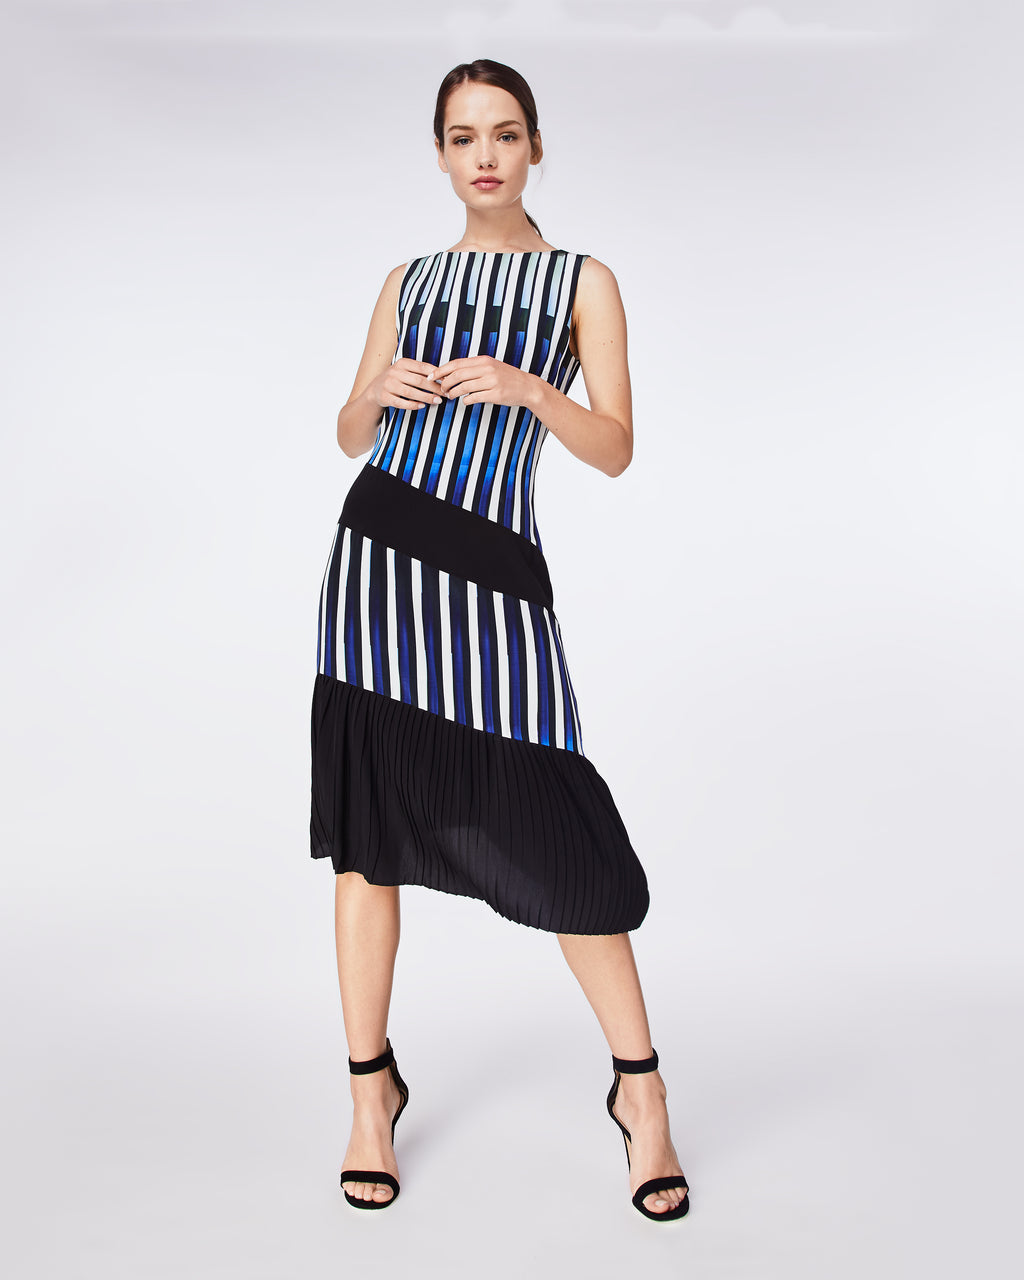 BQ10333 - PIANO KEYS PLEATED DRESS - dresses - midi - Silky and sophisticated, this fit-and-flare dress is elegantly finished with an asymmetrical pleated skirt and fully lined. Throw on a blazer and wear to the office or with black heels for a night out.